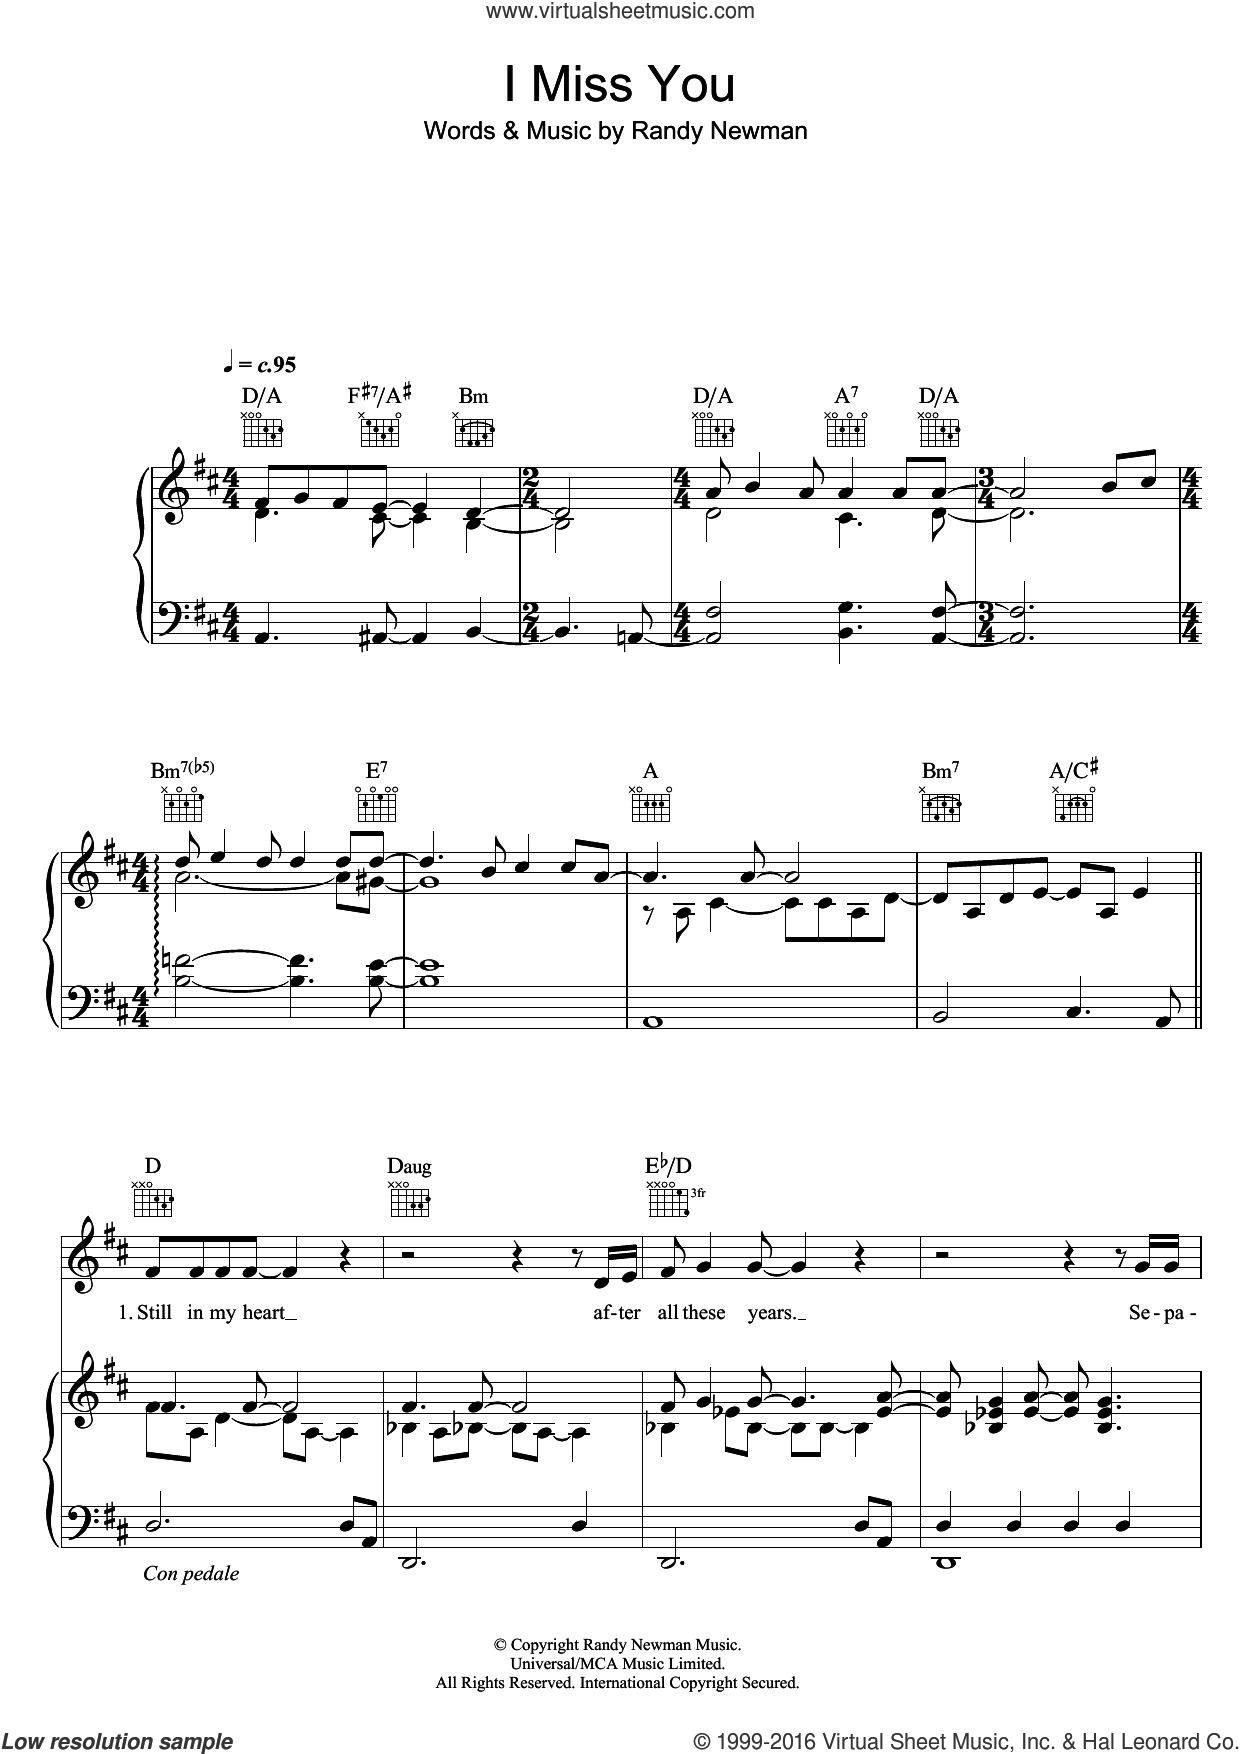 I Miss You sheet music for voice, piano or guitar by Randy Newman, intermediate skill level